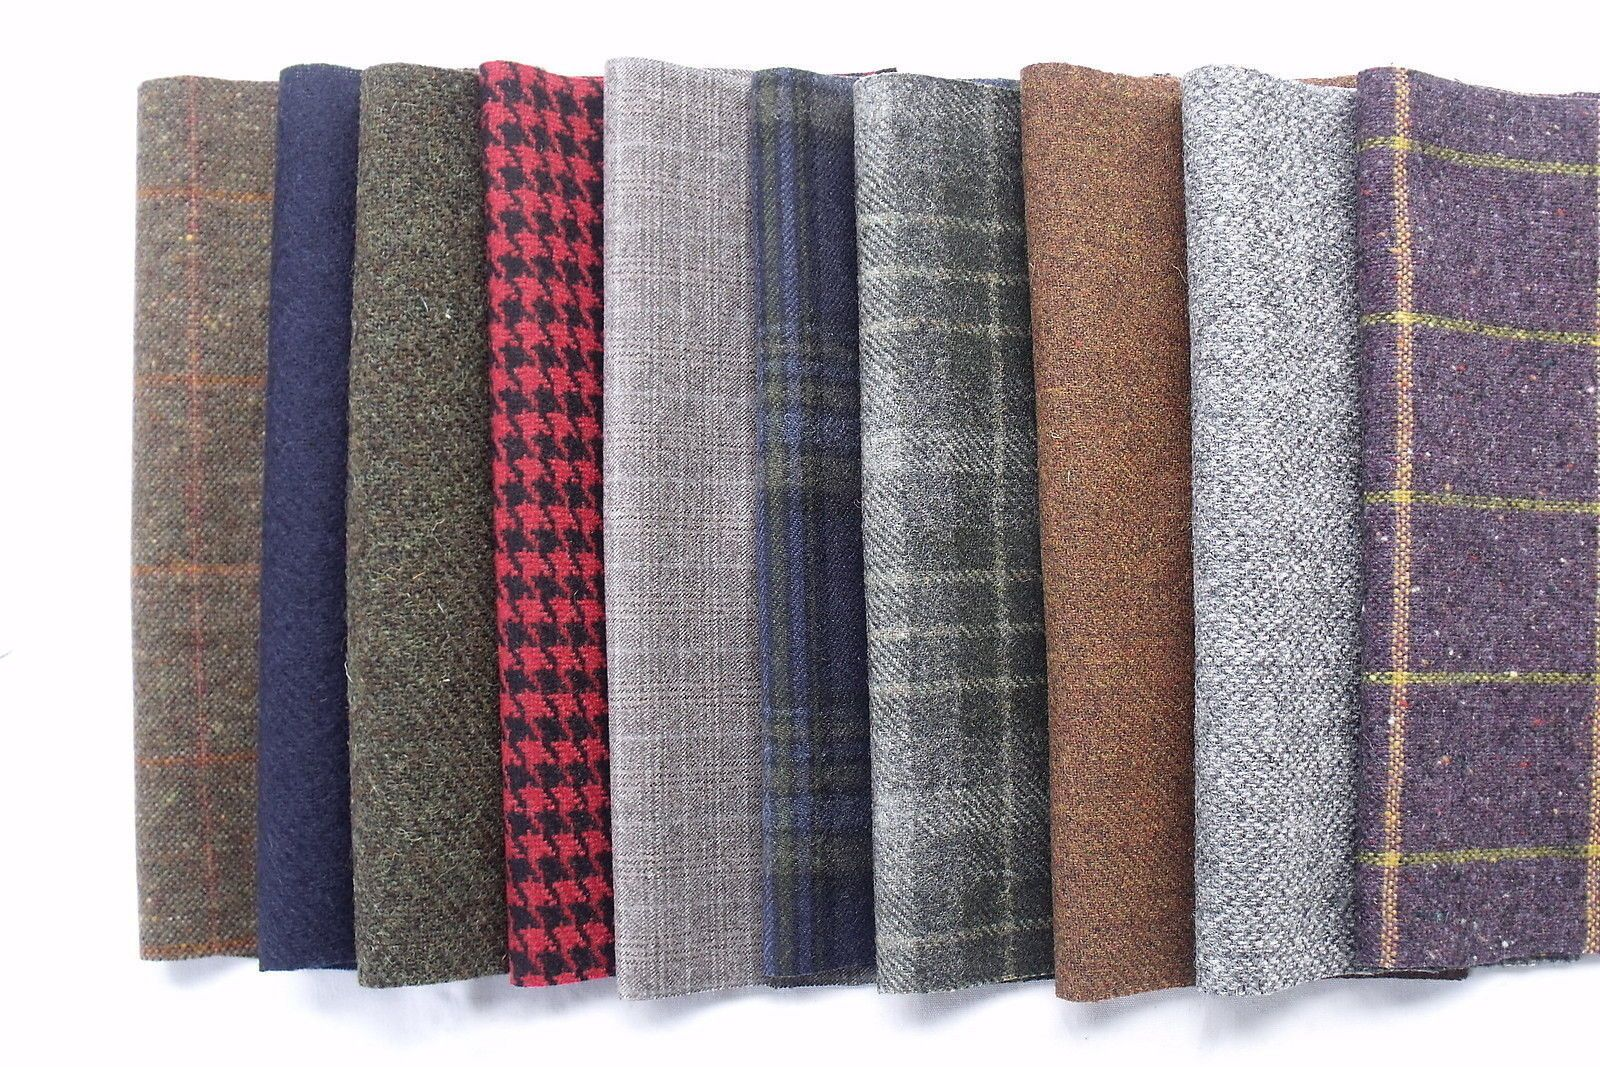 100 Pure Wool Tweed Remnants Offcuts Patchwork Rag Rug Crafts 10 Large Pieces